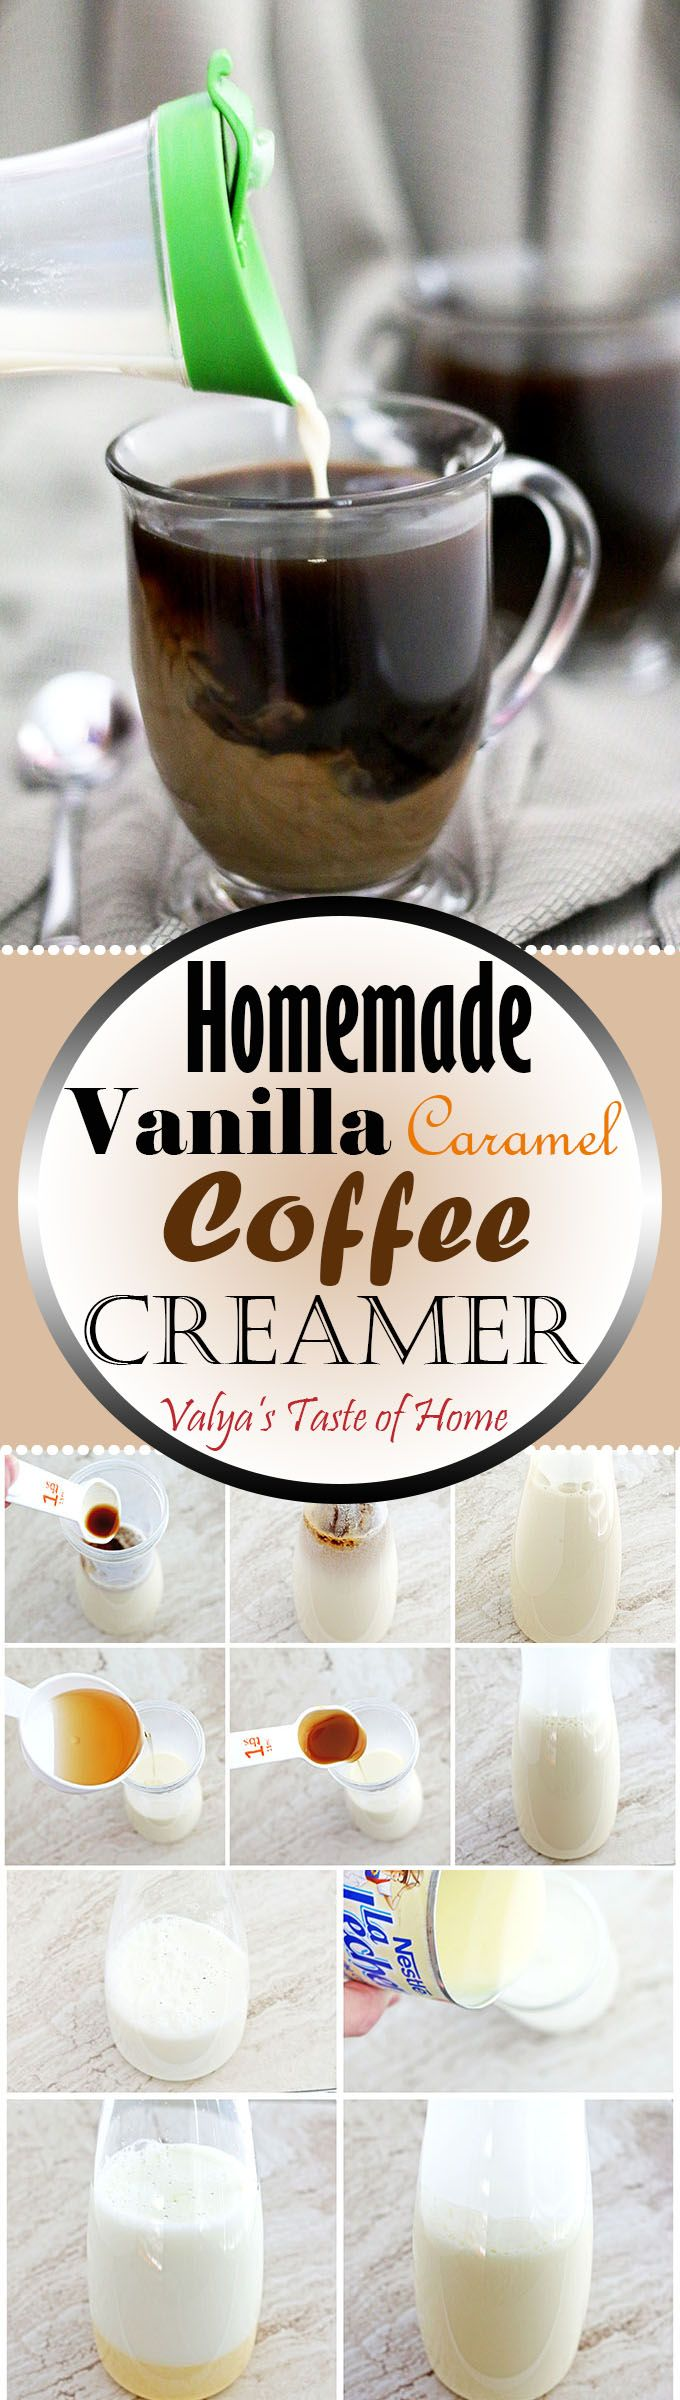 With really cold days approaching, we all look forward to braving them out with a cup of hot coffee. Since I don't like my coffee plain, the addition of steamed milk and tasty vanilla-caramel flavors, my coffee tastes just as delicious as from a coffee shop and for so much less.